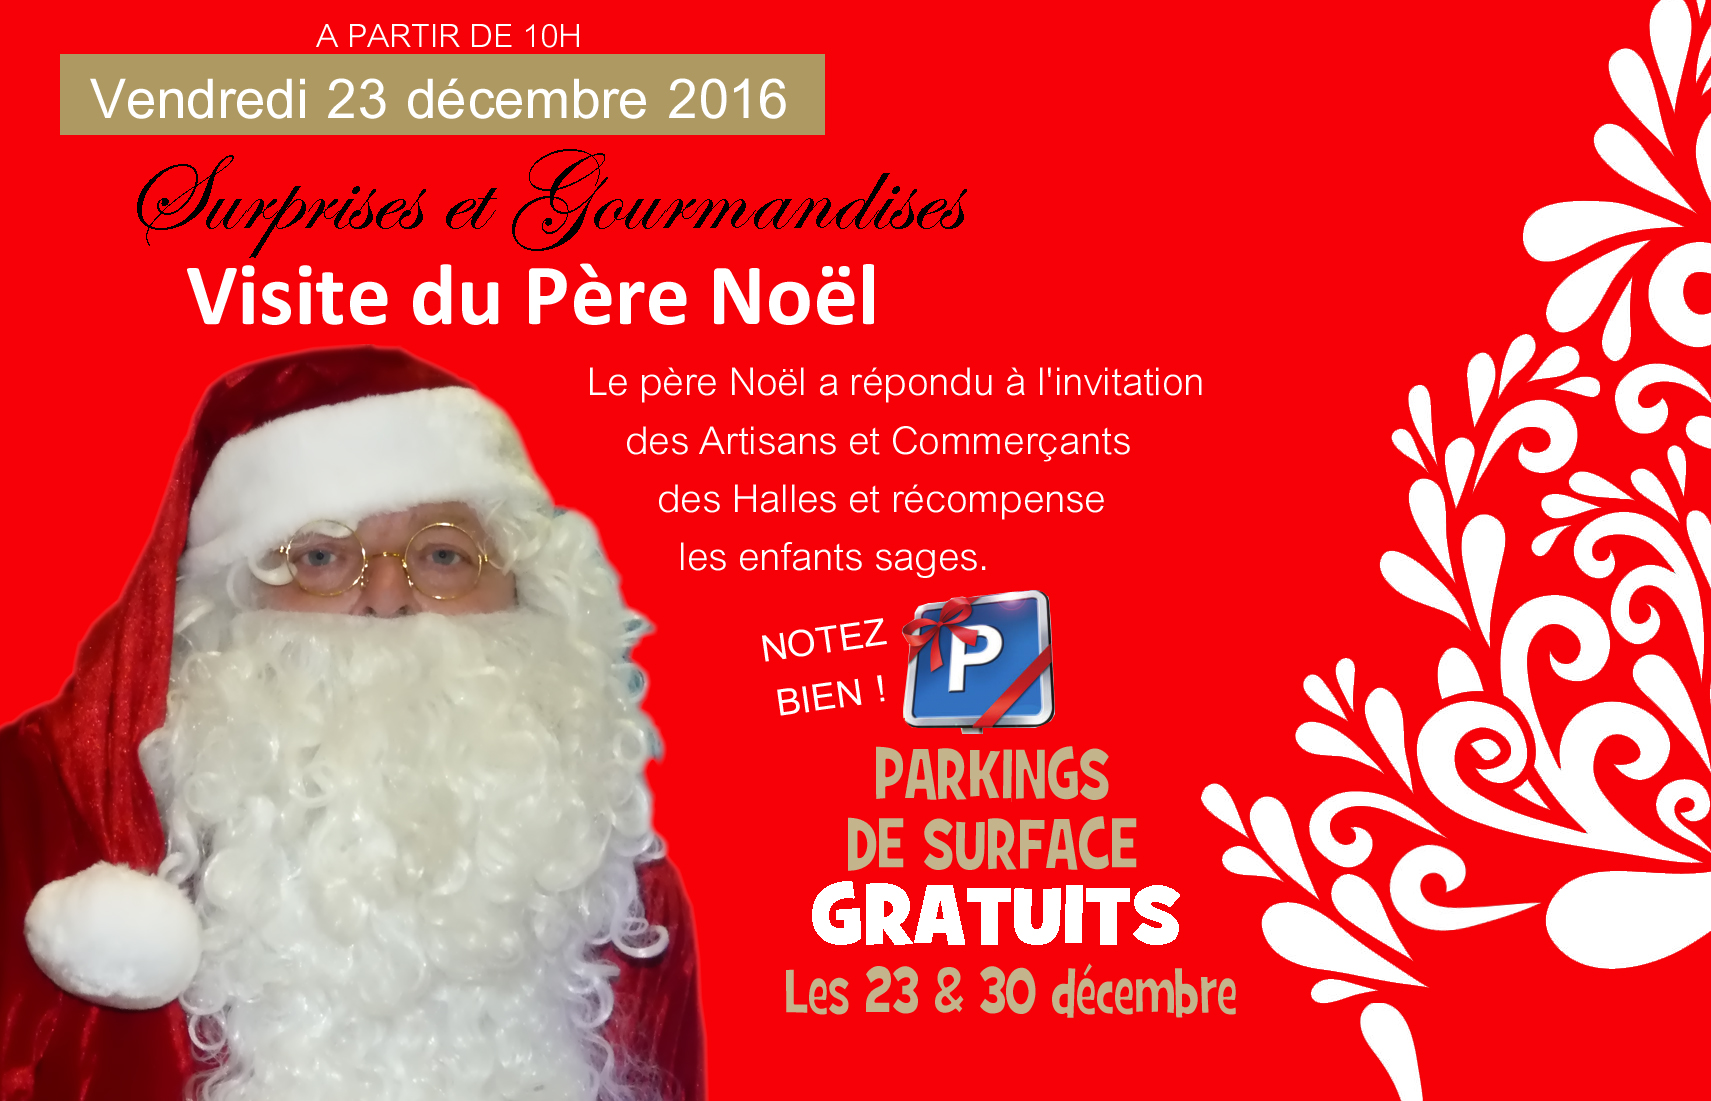 halles_narbonne_animation_pere-noel_2016